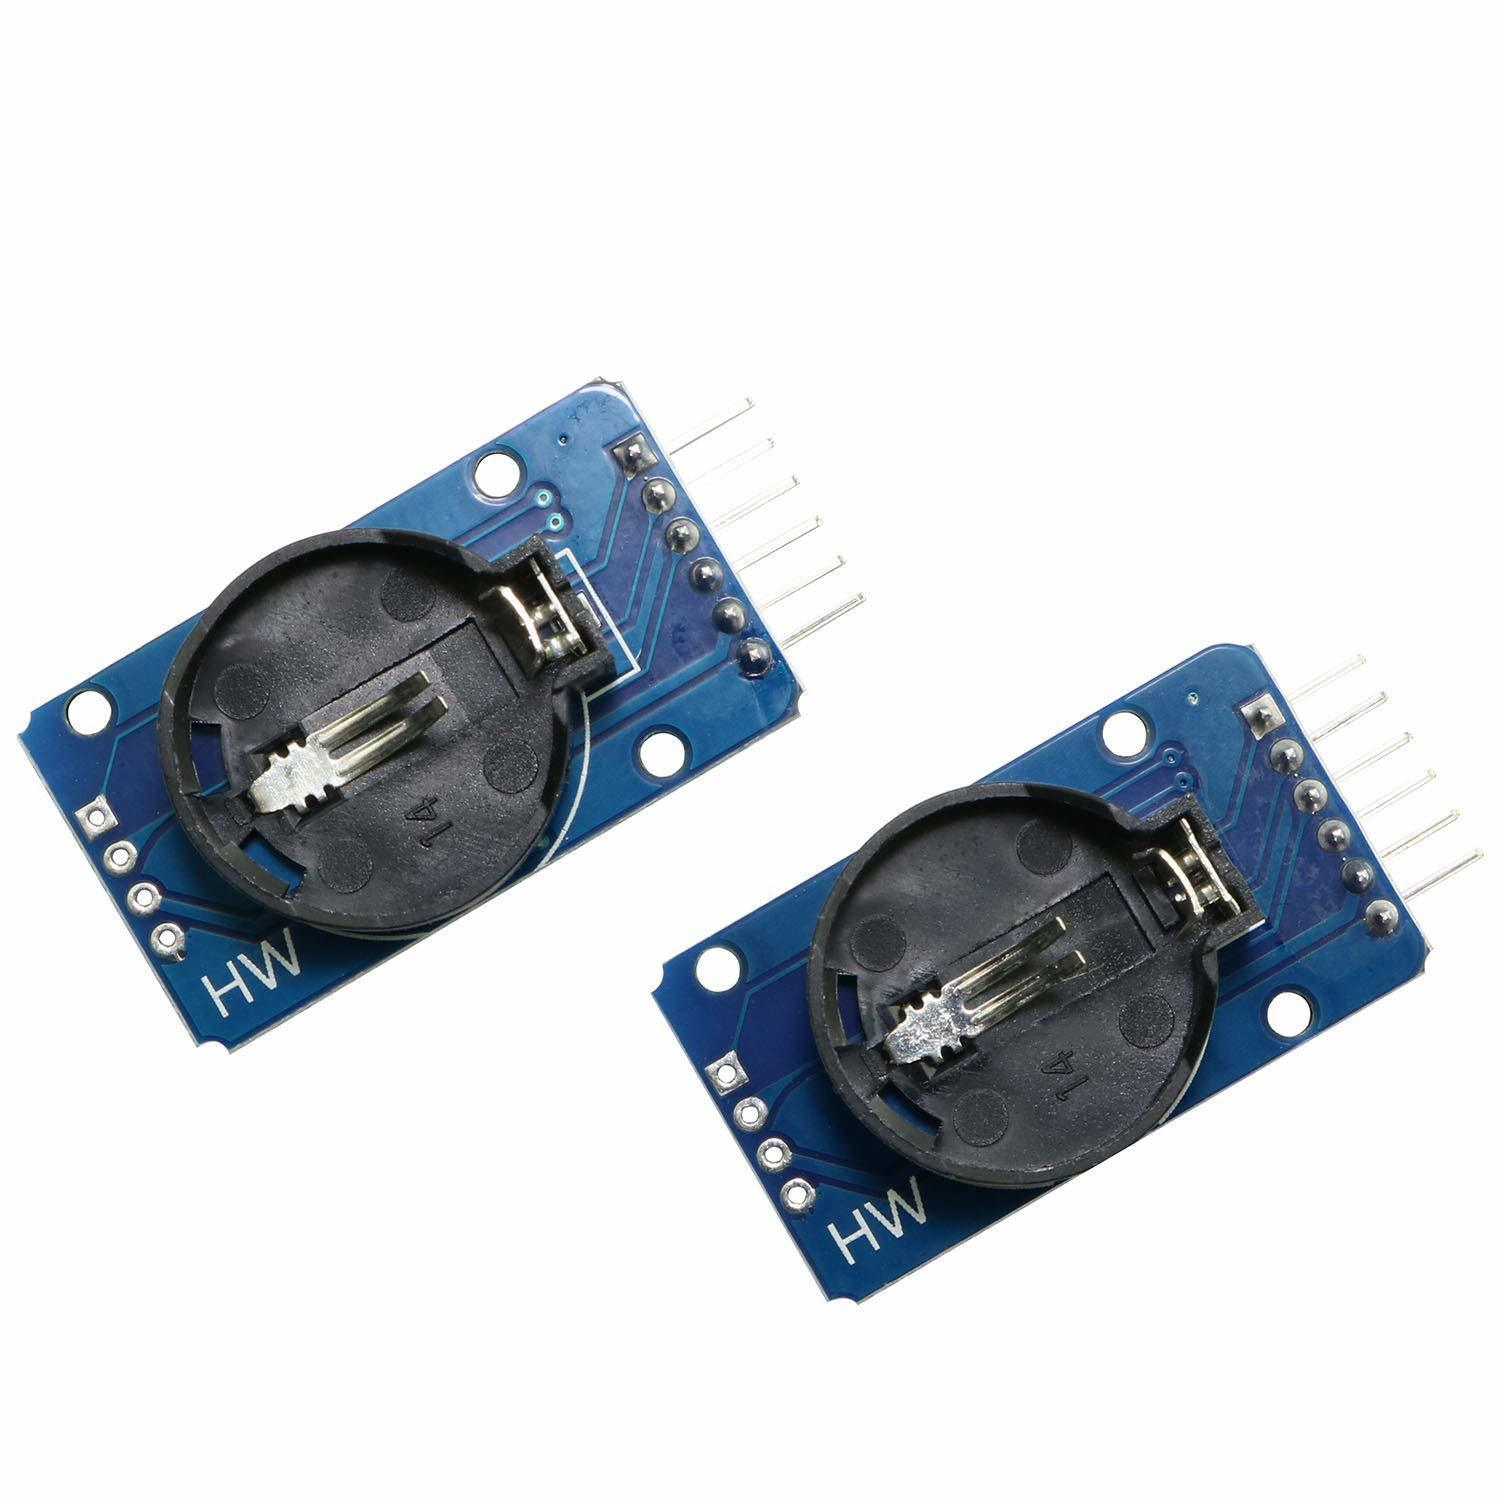 RTC DS3231 AT24C32 Memory Real Time Clock IIC Modul für Arduino CR2032 Batterie